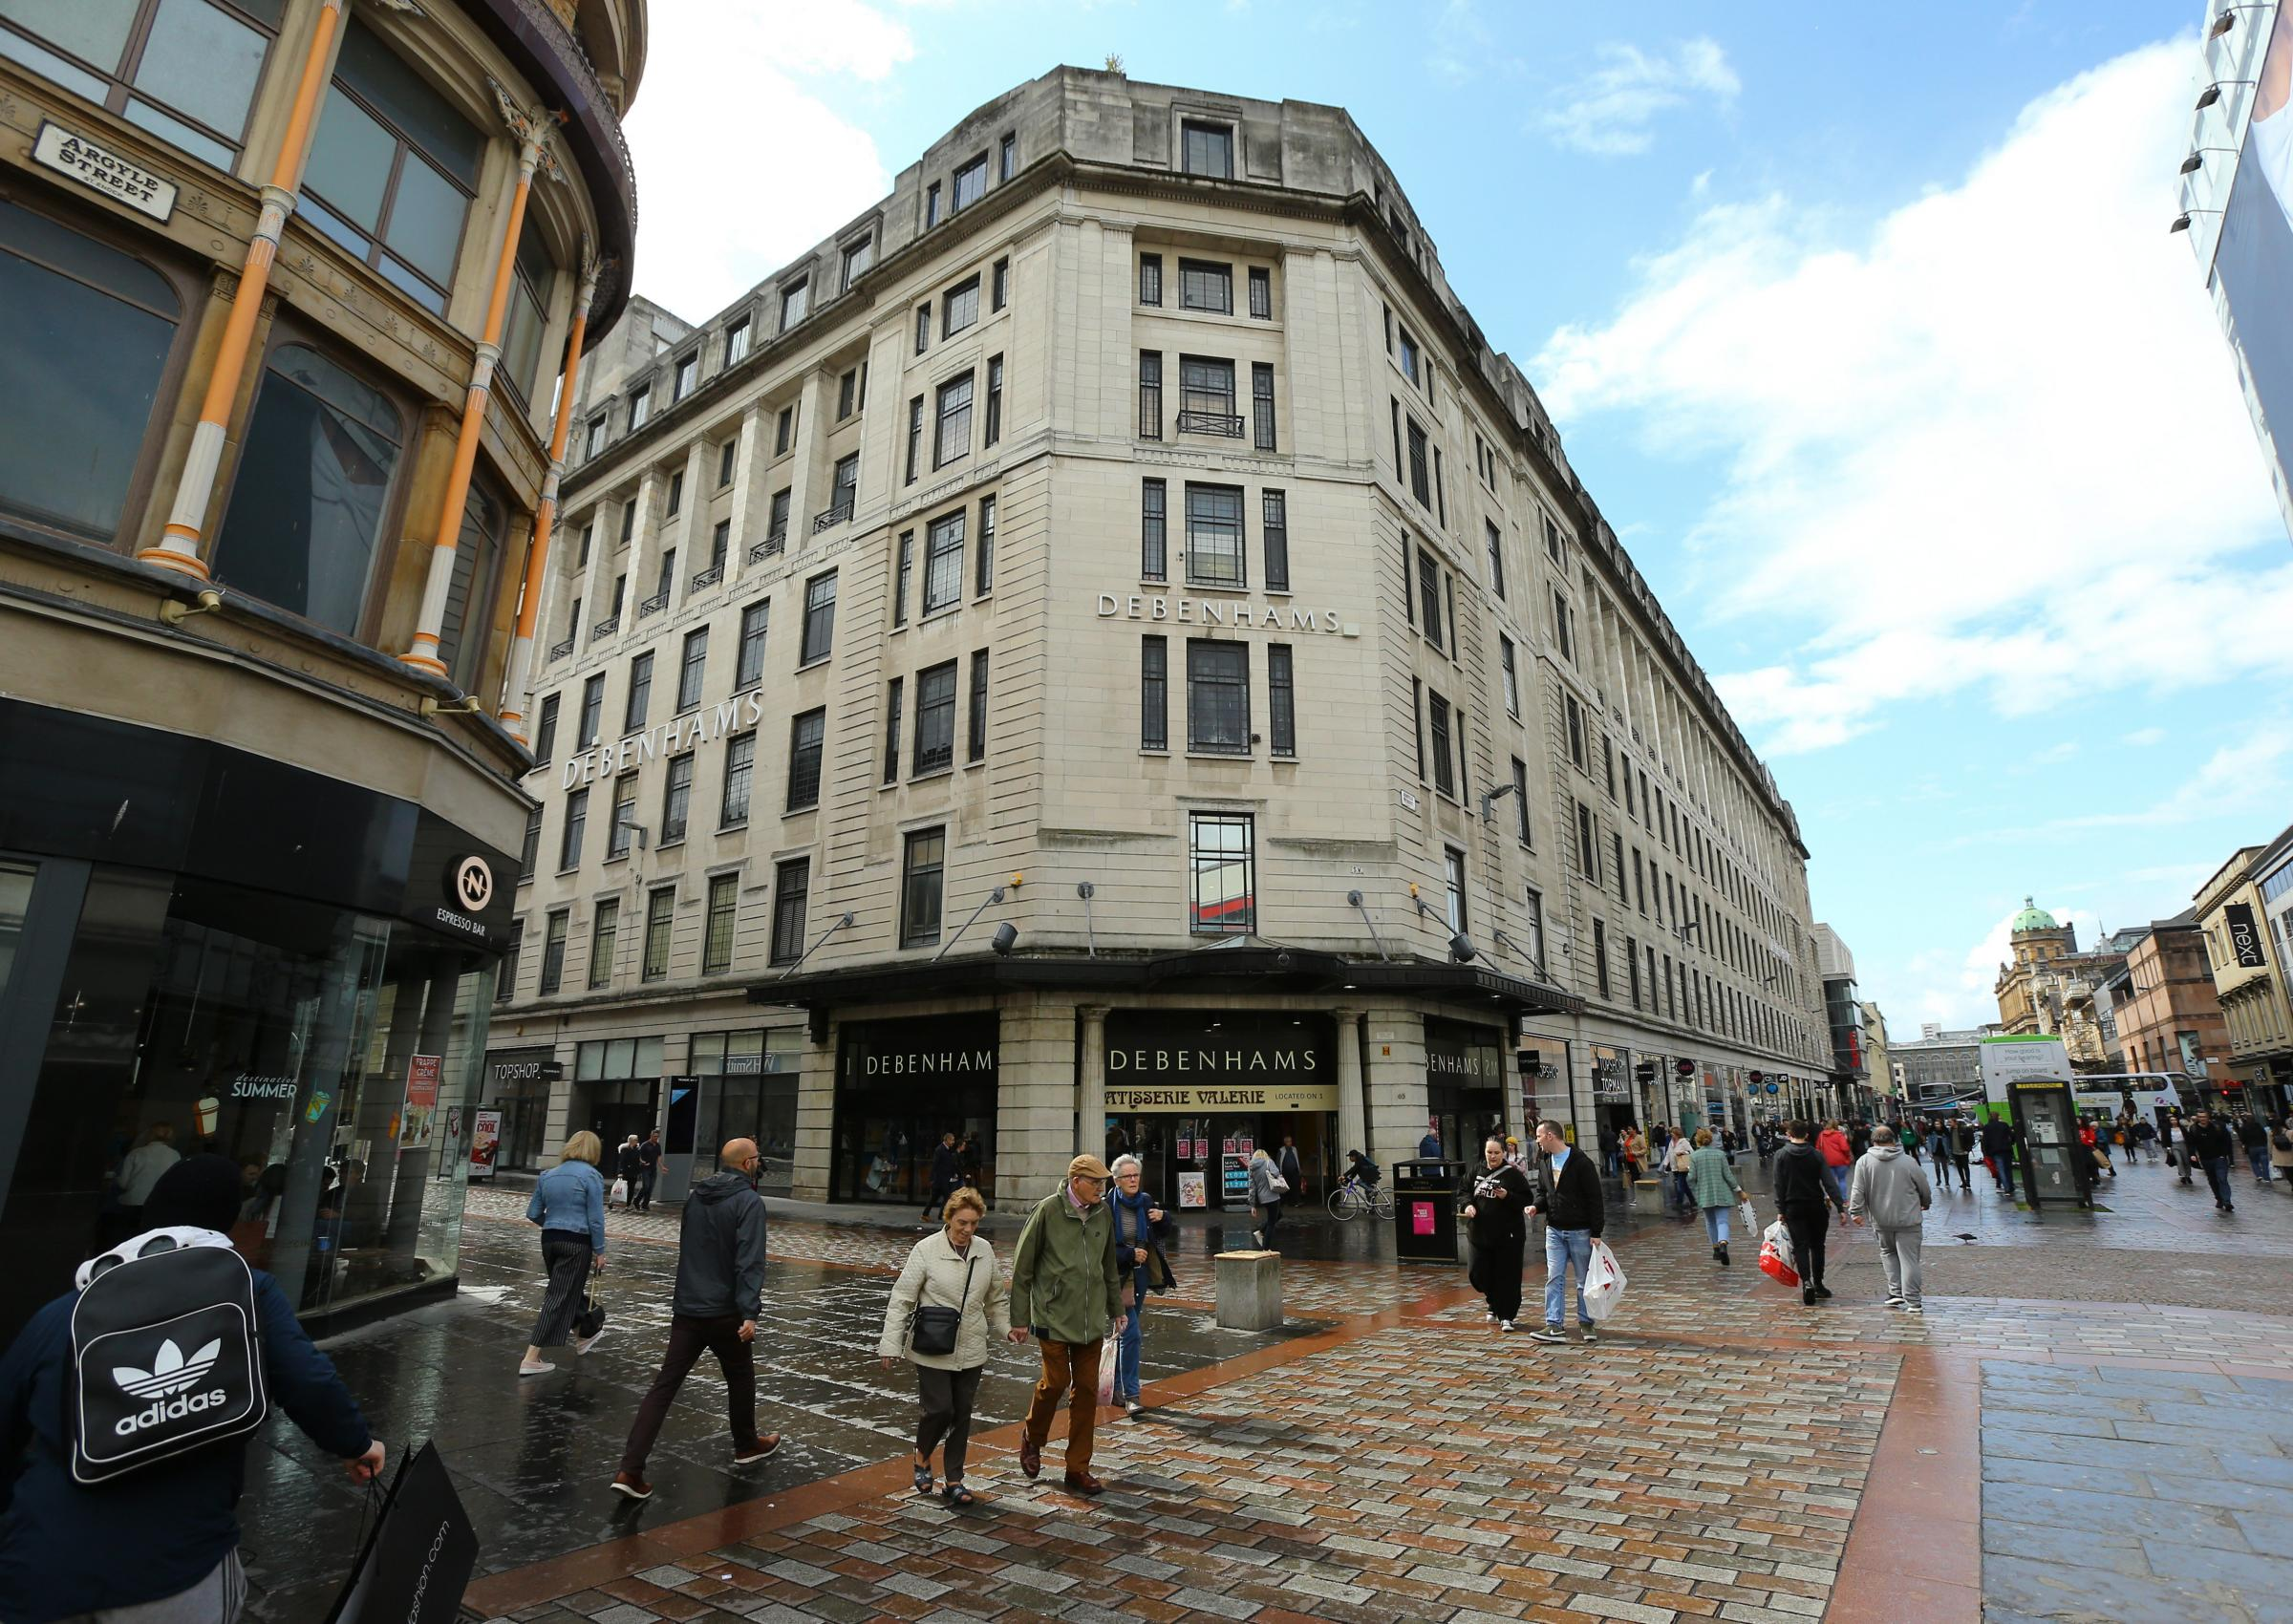 Debenhams weighs up Mike Ashley loan offer